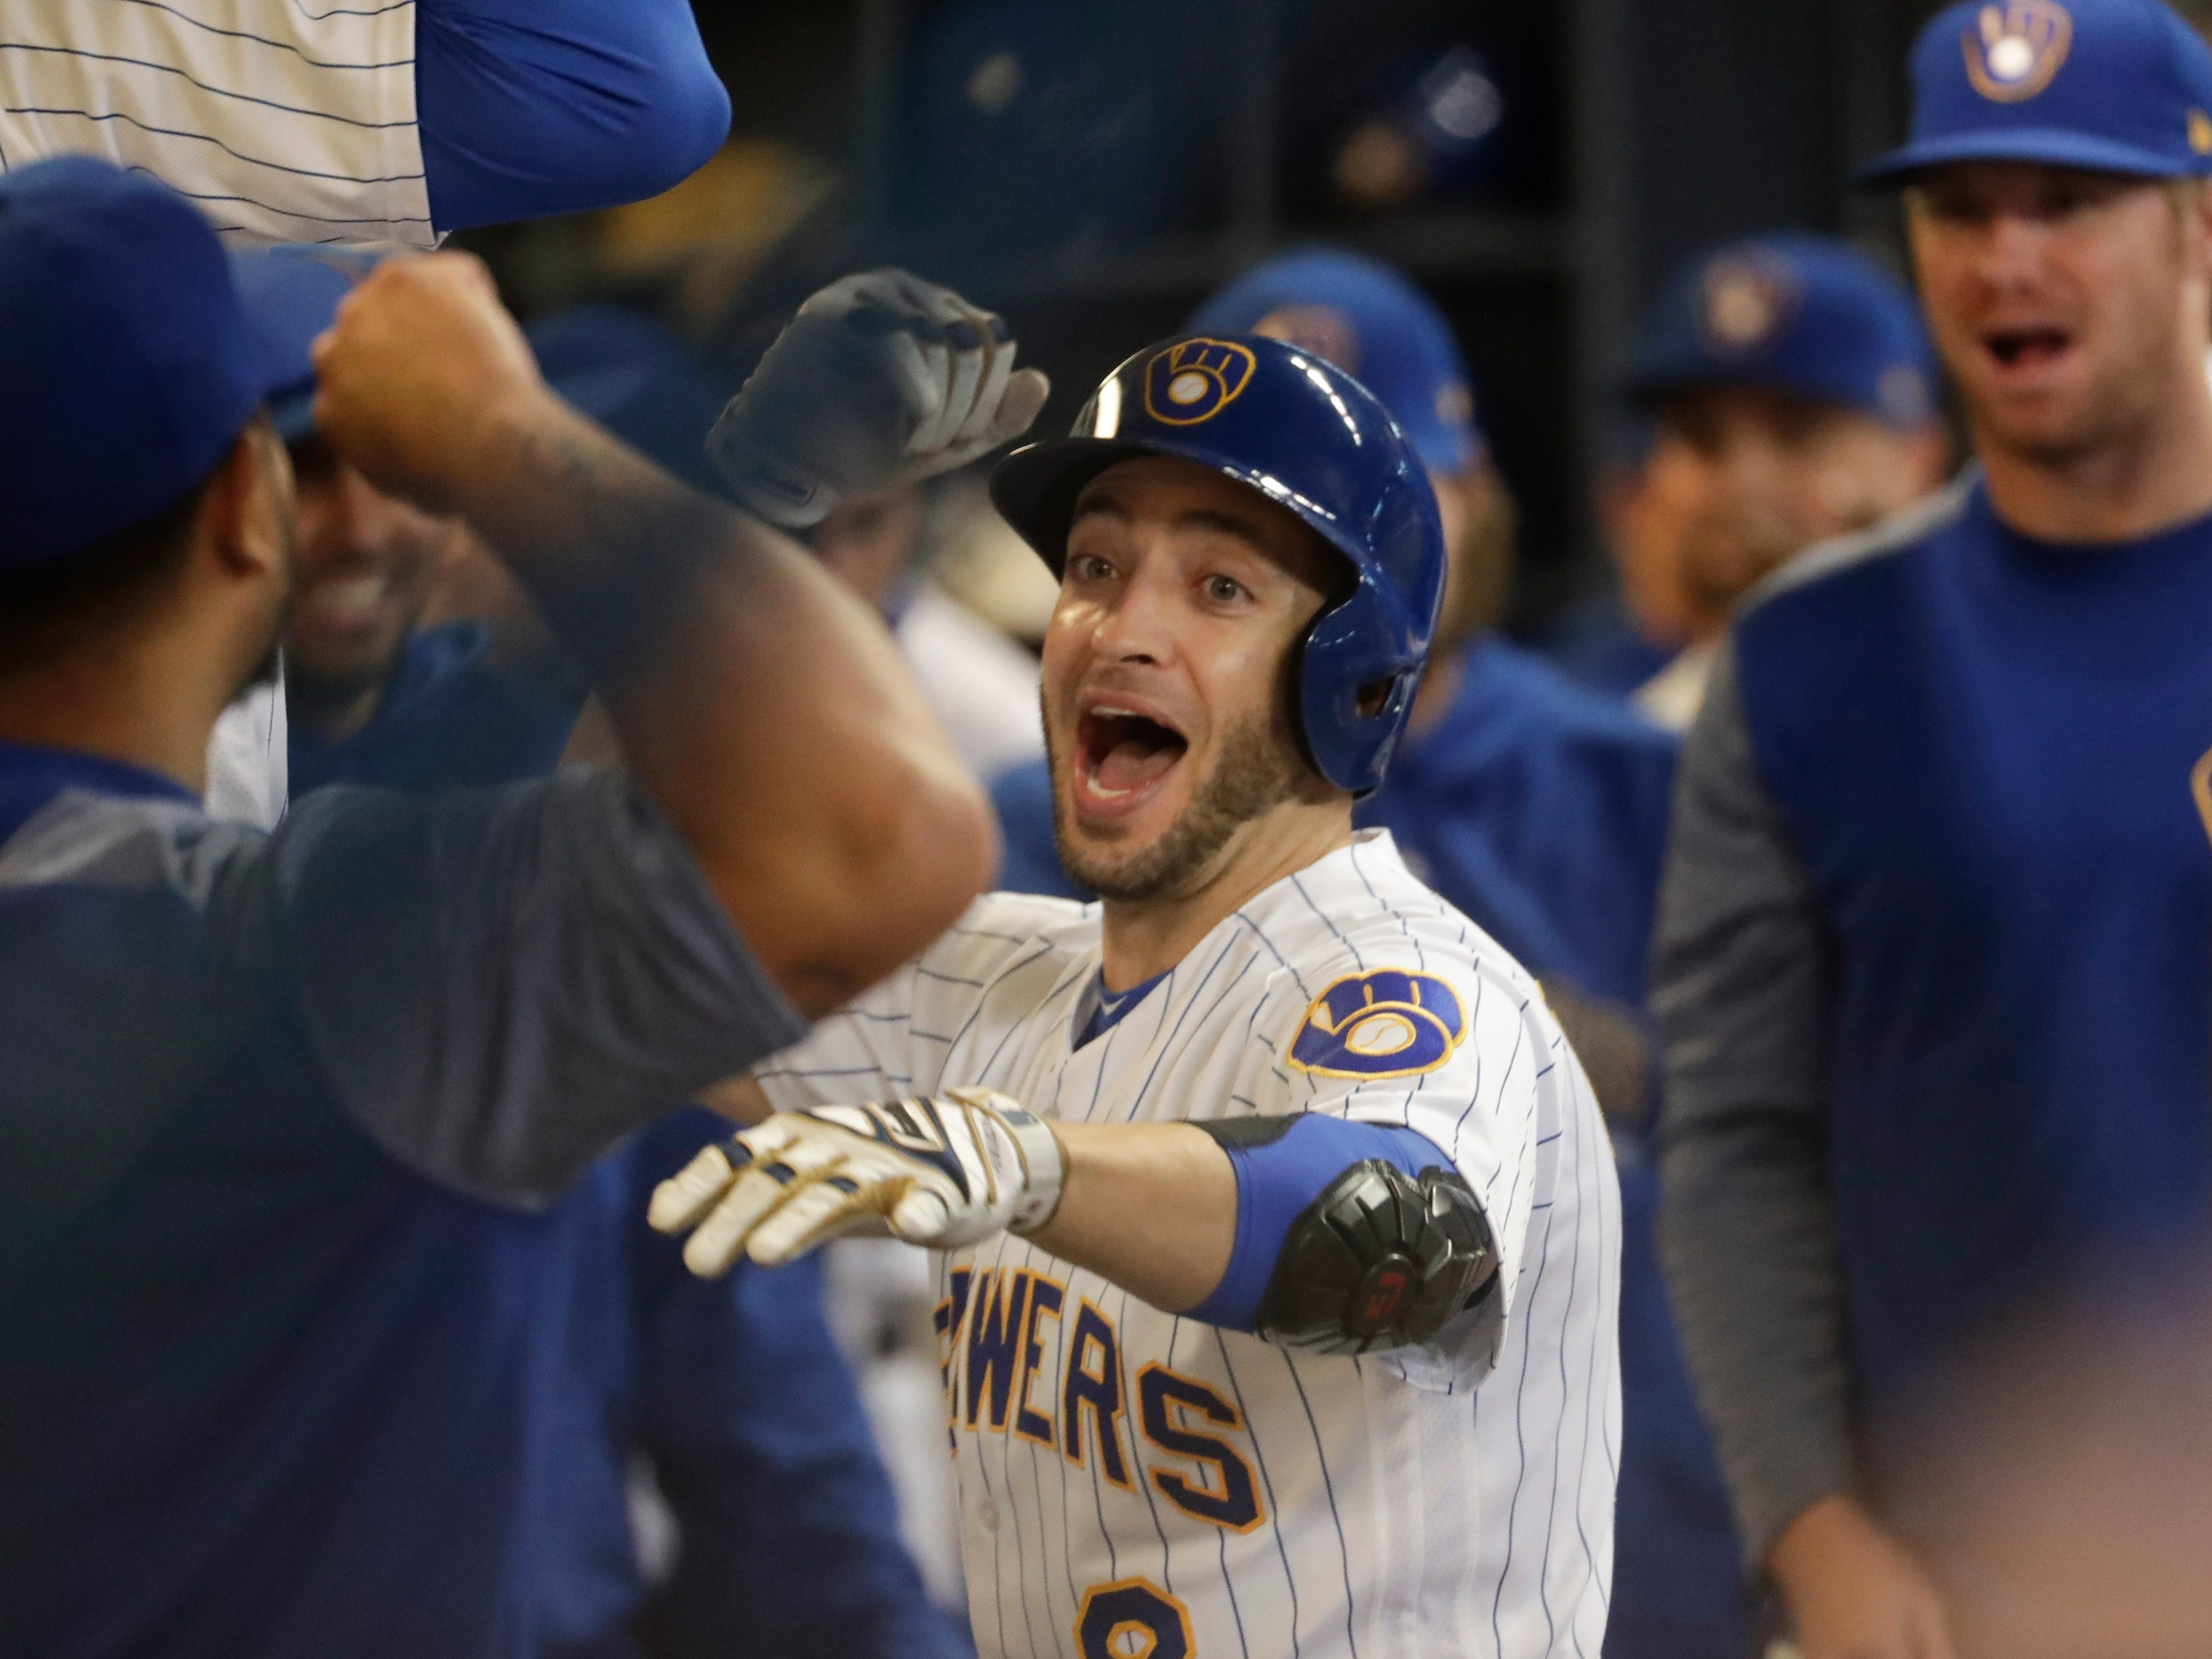 Milwaukee Brewers' Ryan Braun celebrates his home run during the eighth inning against the Detroit Tigers Friday, Sept. 28, 2018, in Milwaukee.